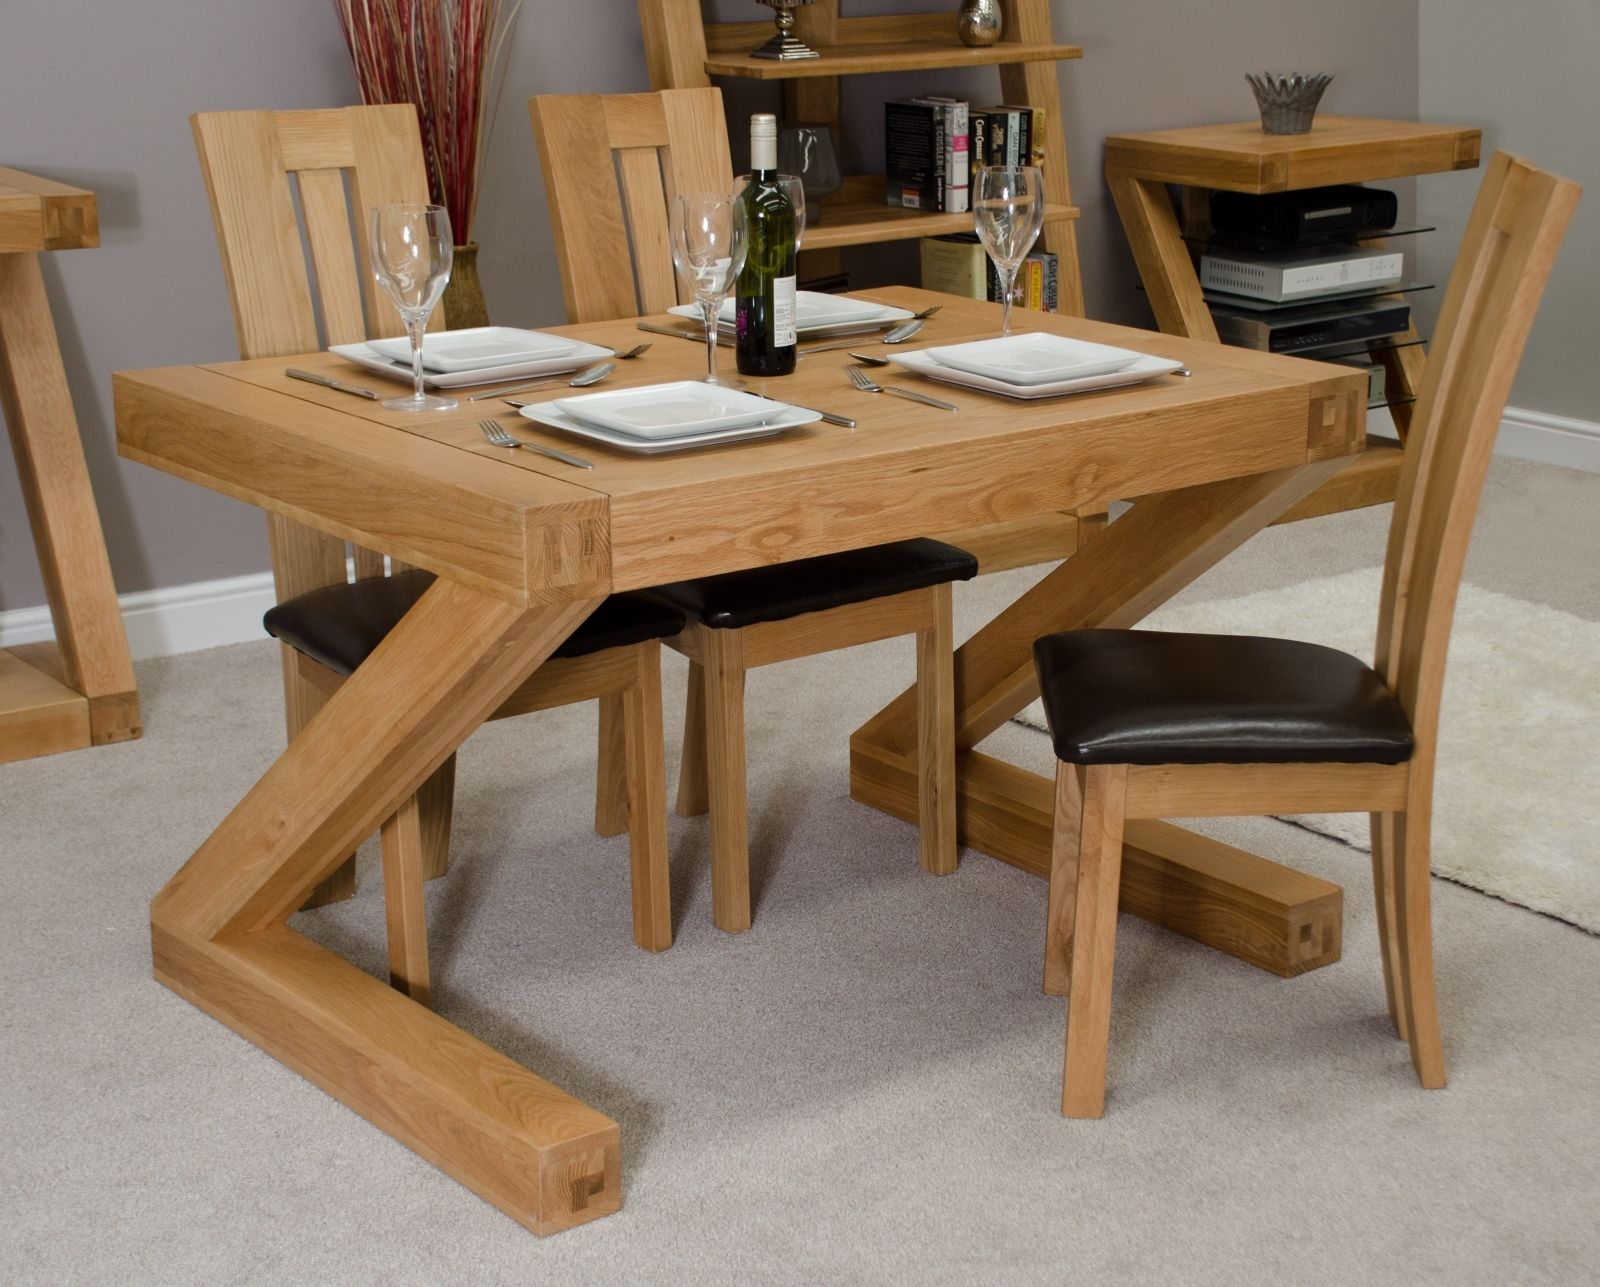 wonderful space saver dining set with solid oak table in rectangular shape plus cool chair with